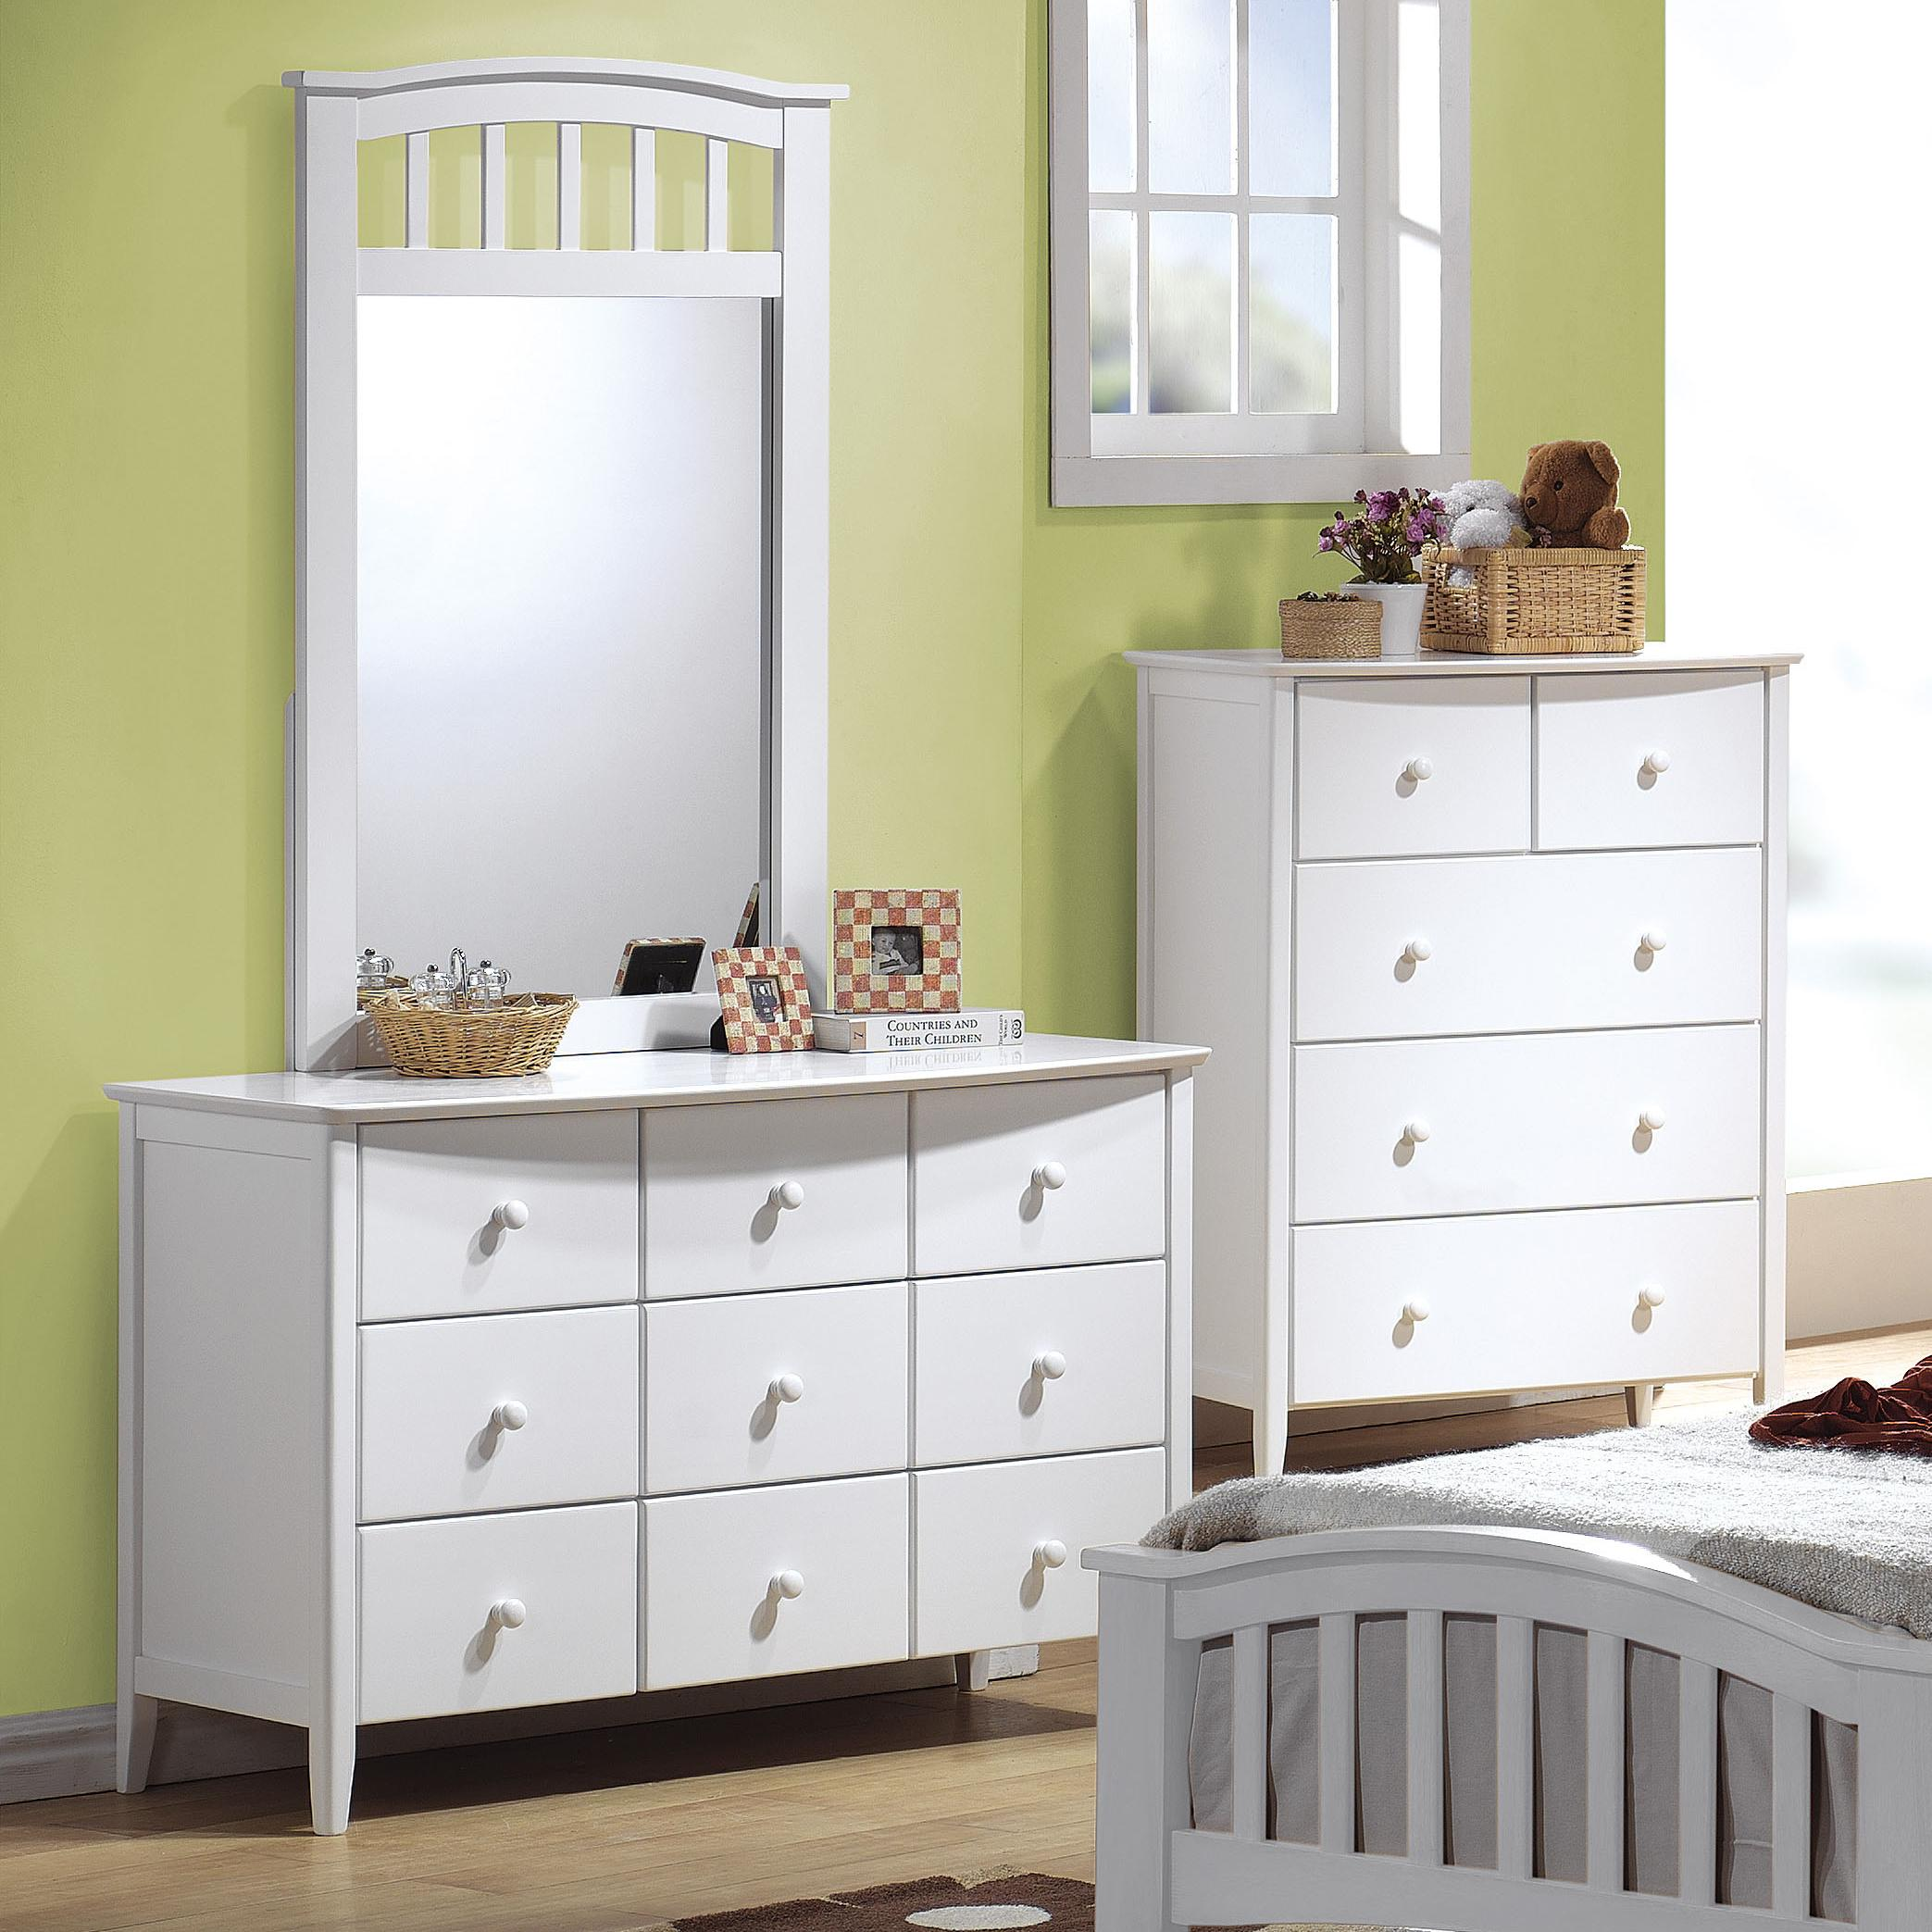 Acme Furniture San Marino Dresser & Mirror Combo - Item Number: 9159+55